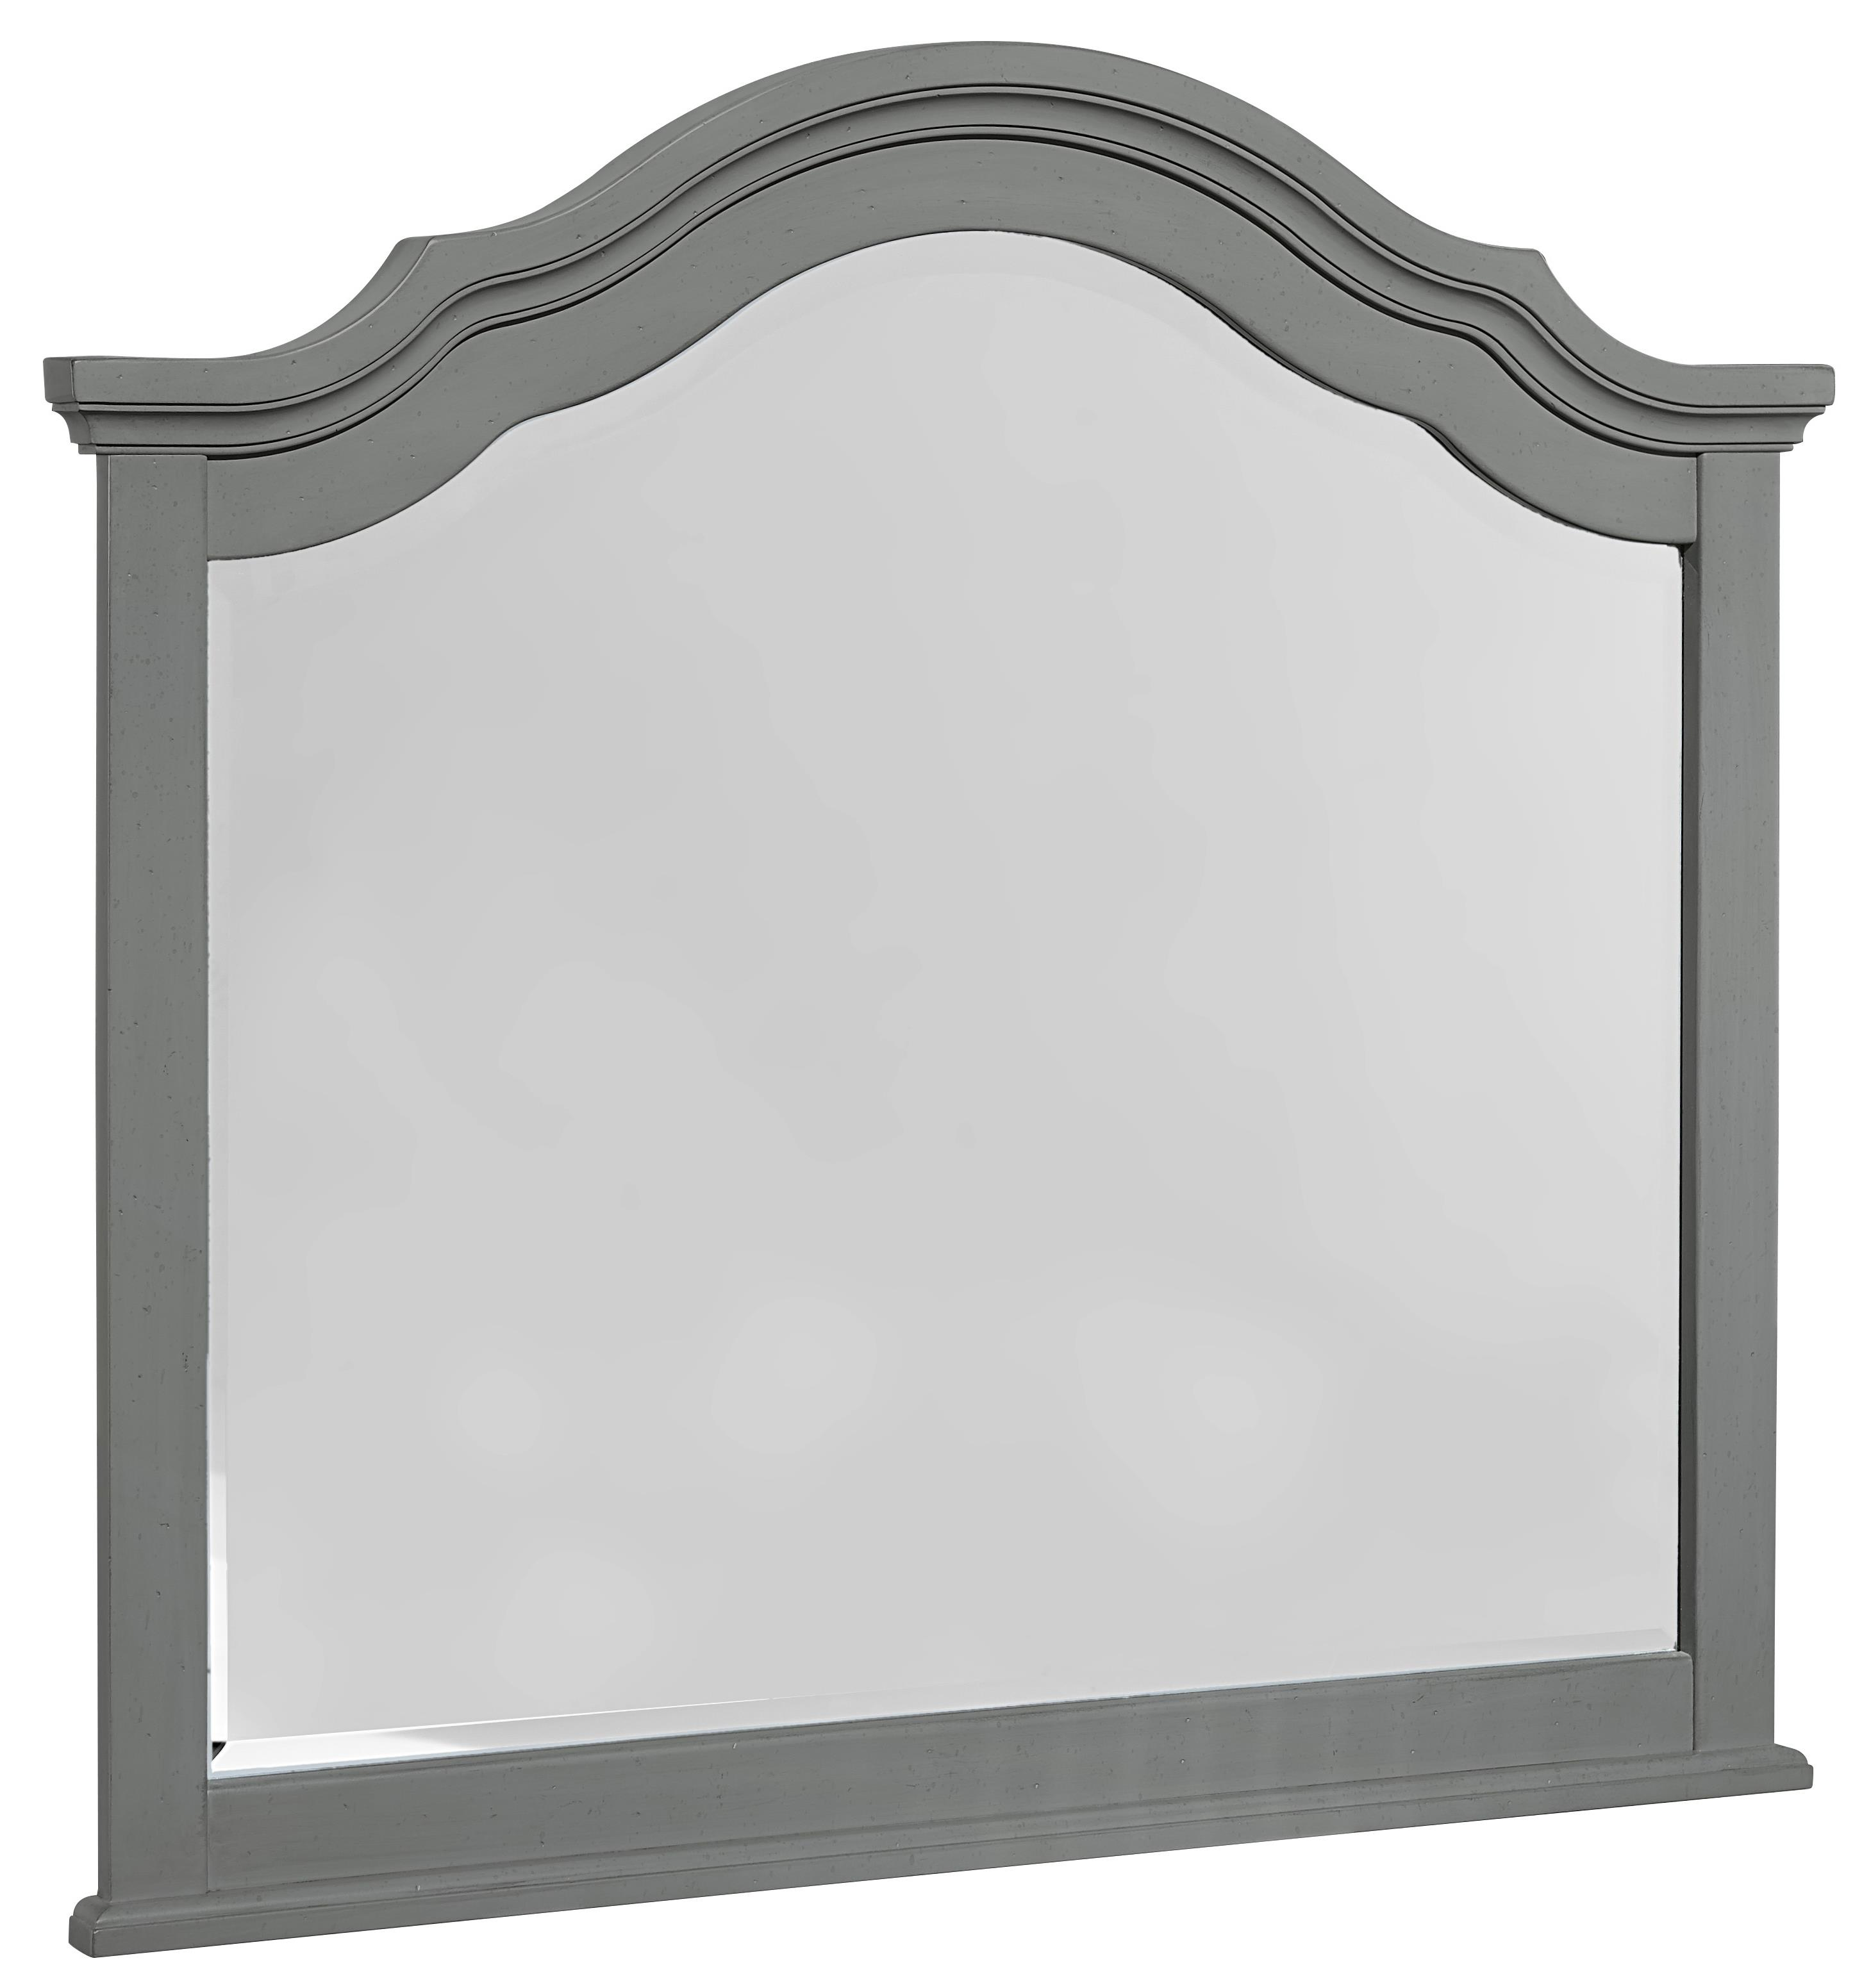 Vaughan Bassett French Market Arched Mirror - Item Number: 381-447